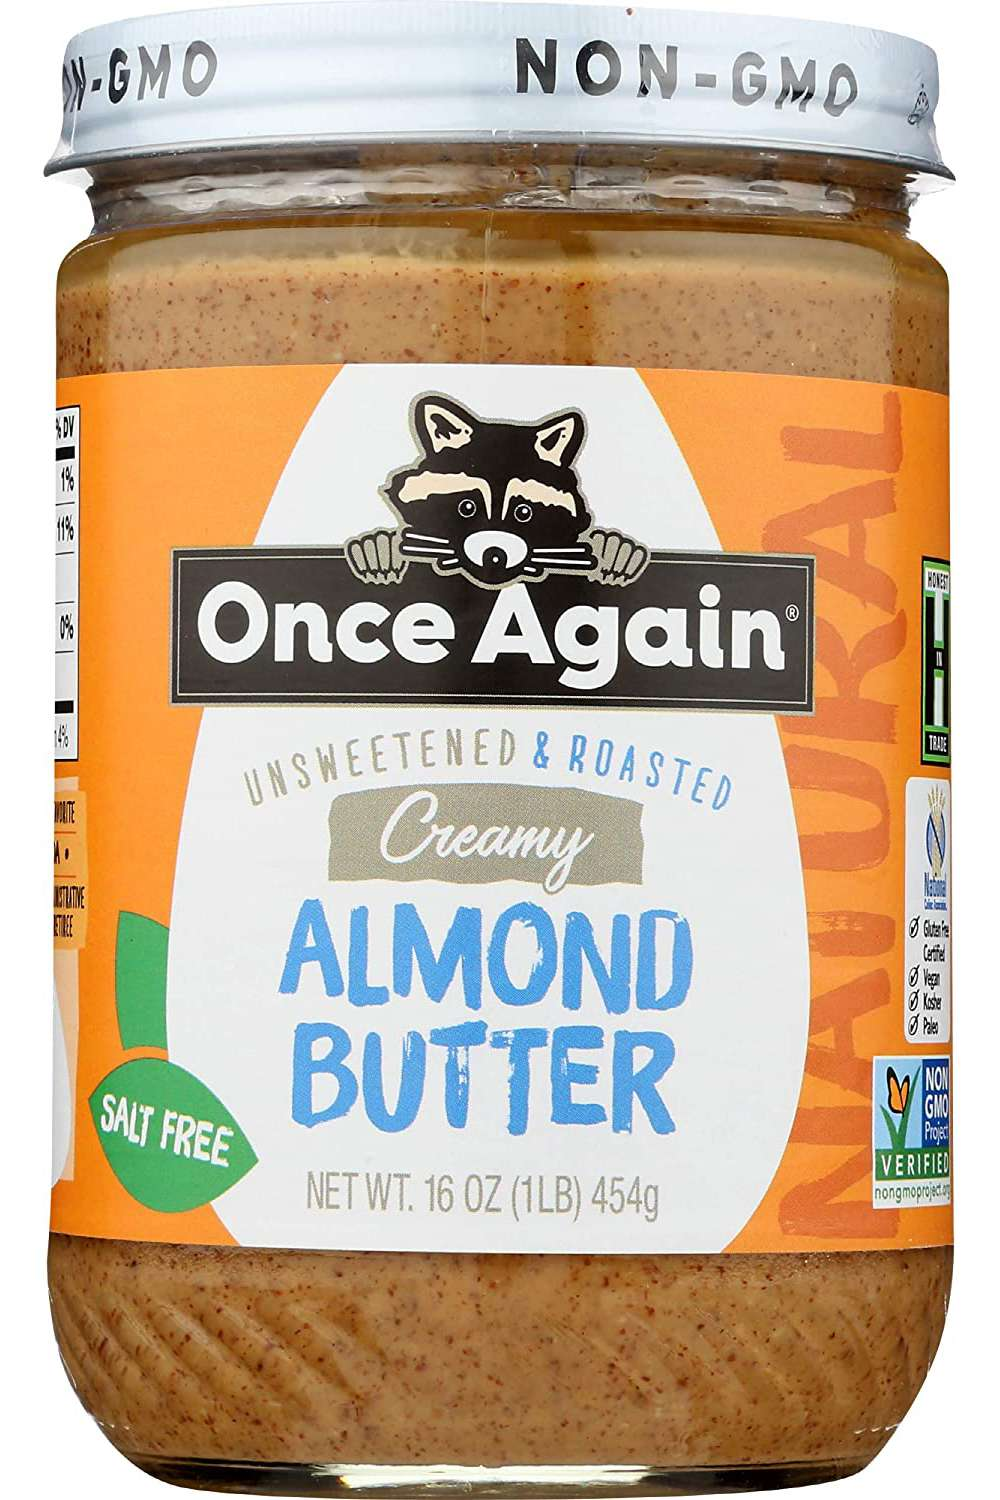 Once Again Unsweetened & Roasted Creamy Almond Butter